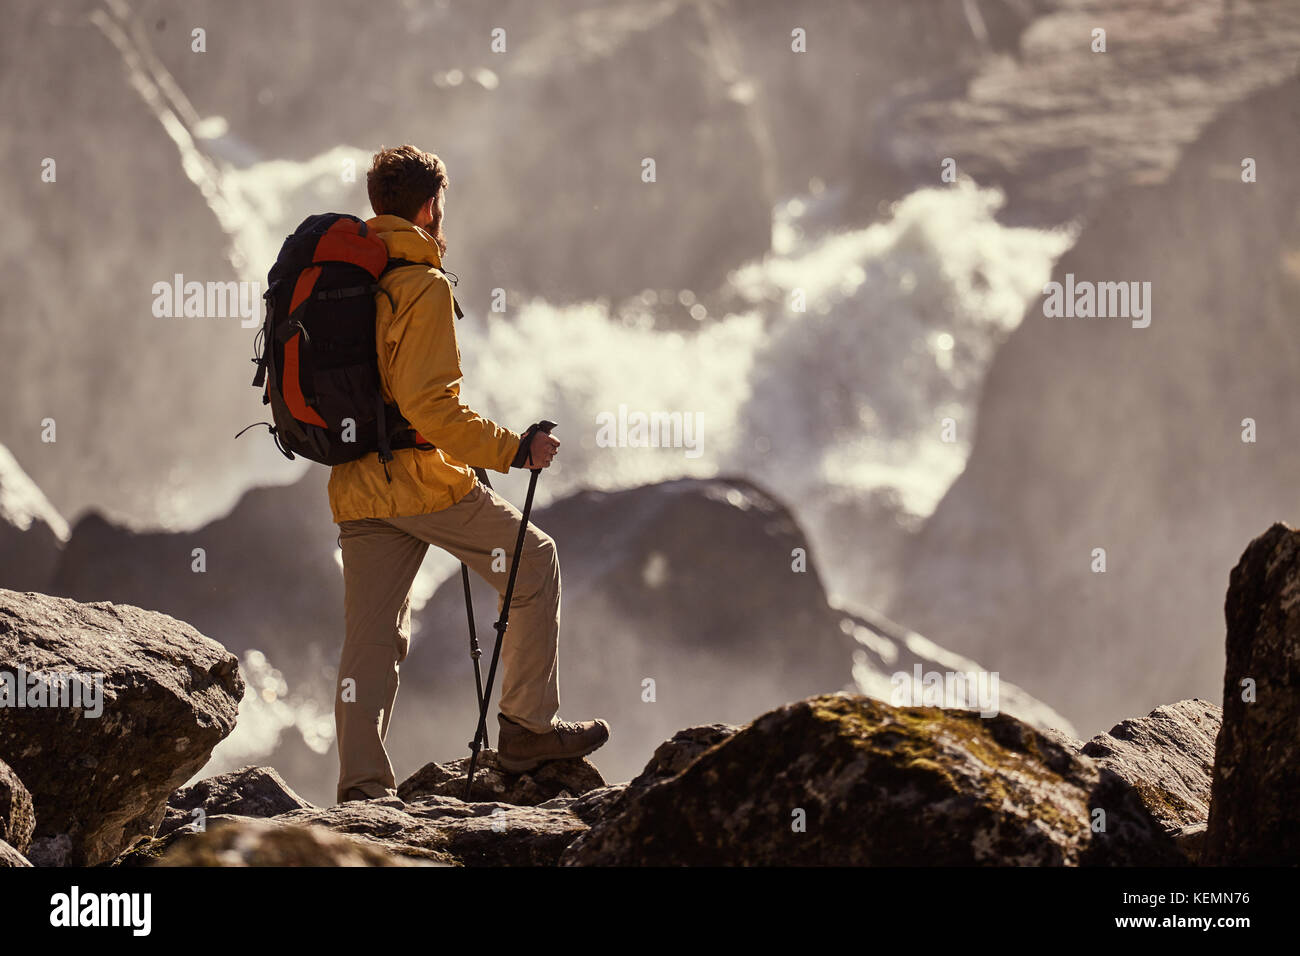 Hiker hiking with backpack looking at waterfall - Stock Image